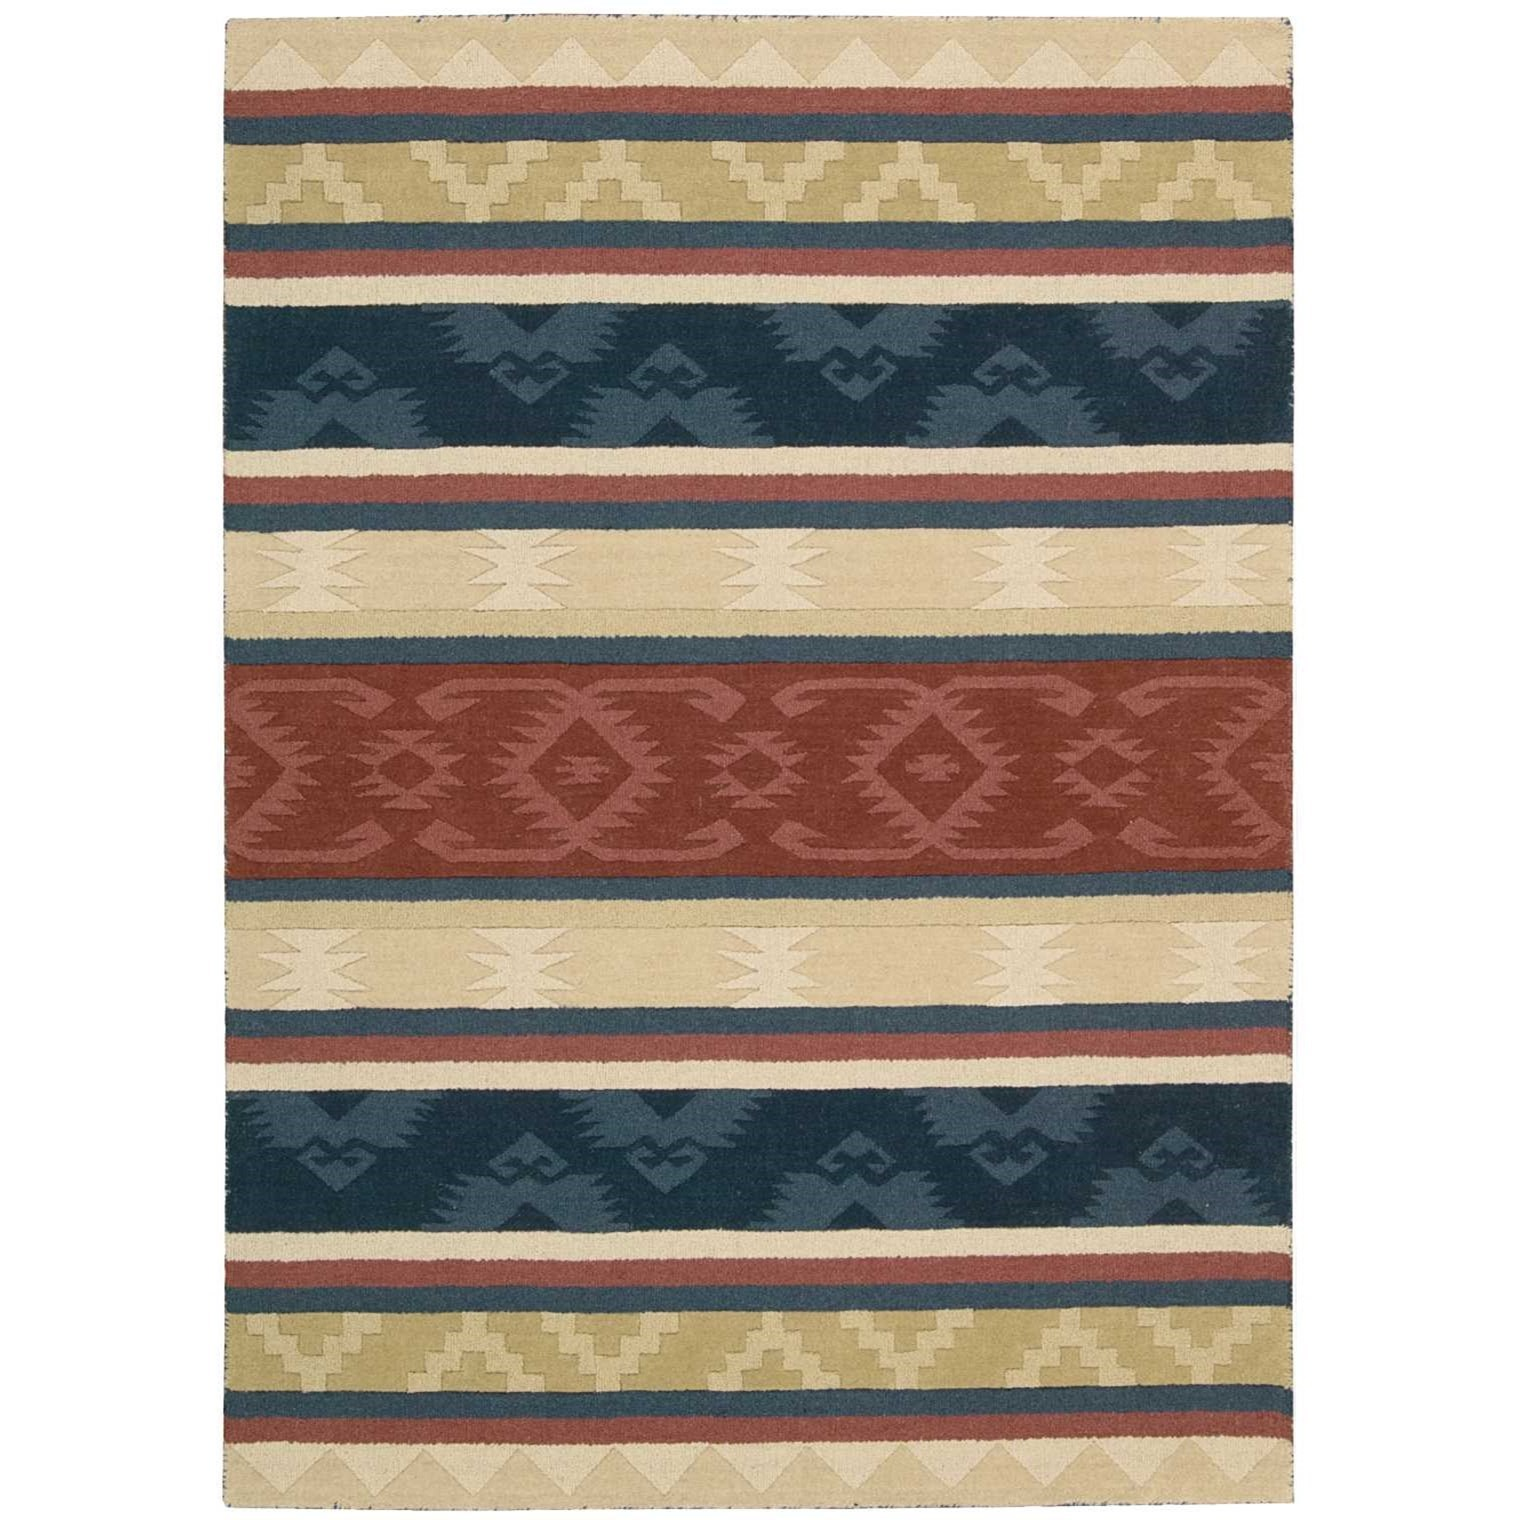 "2'6"" x 4' Multicolor Rectangle Rug"